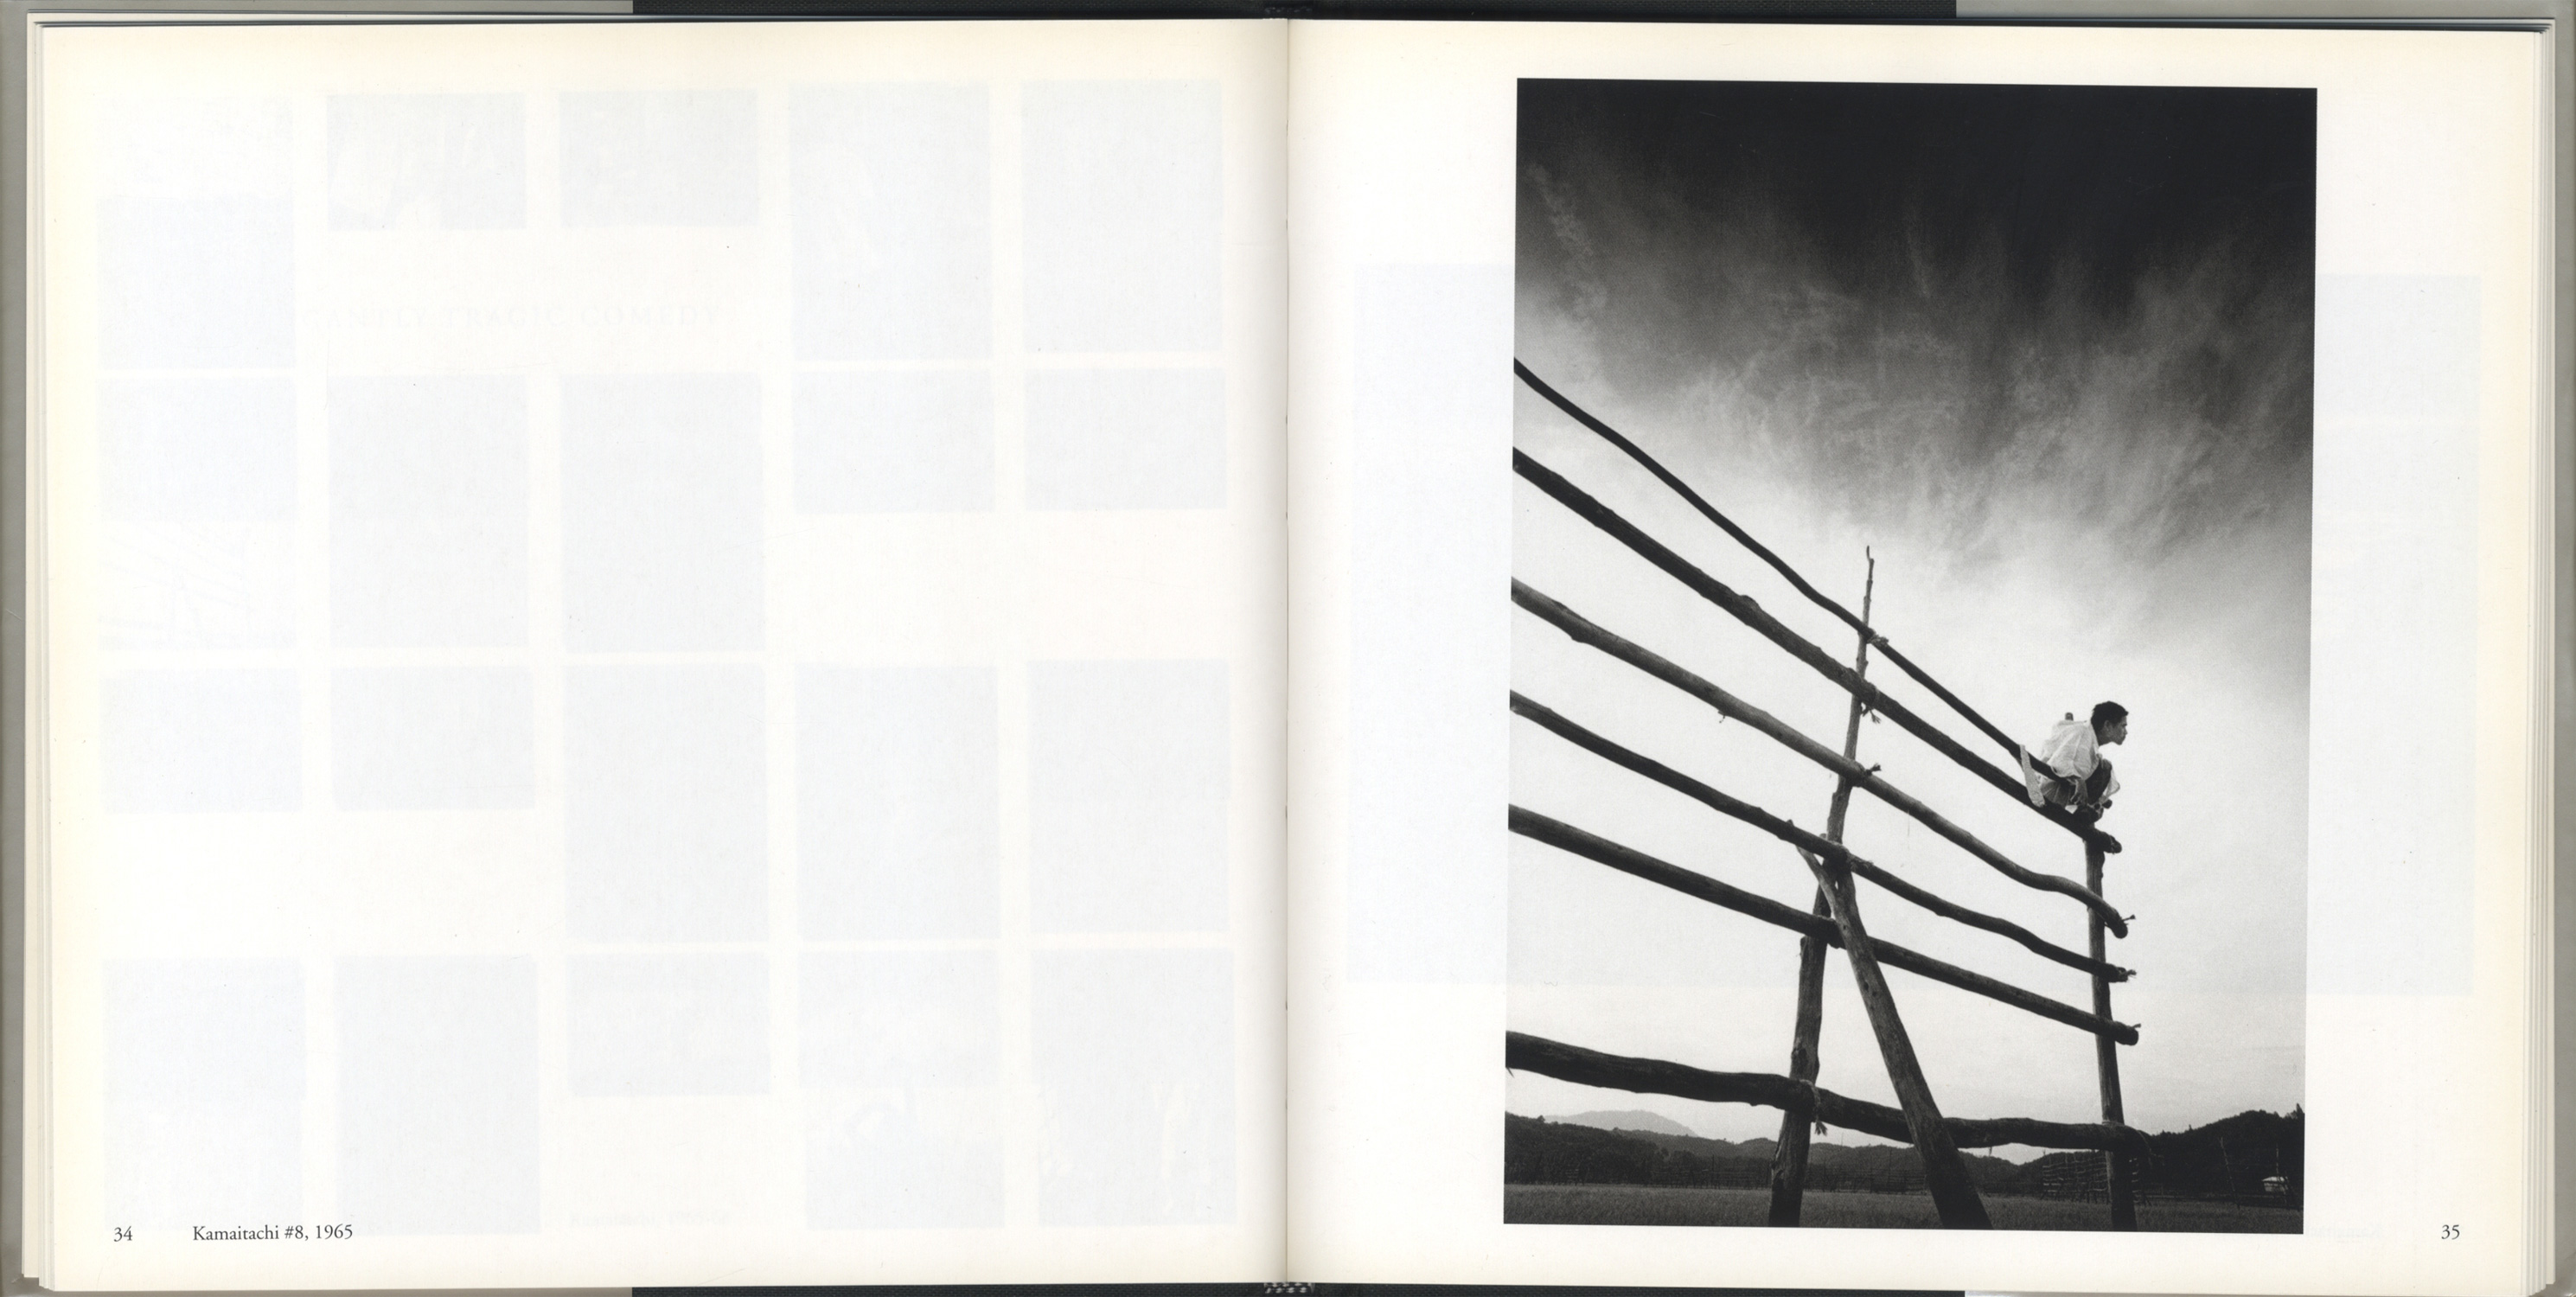 Eikoh Hosoe With an Essy by Mark Holborn[image3]